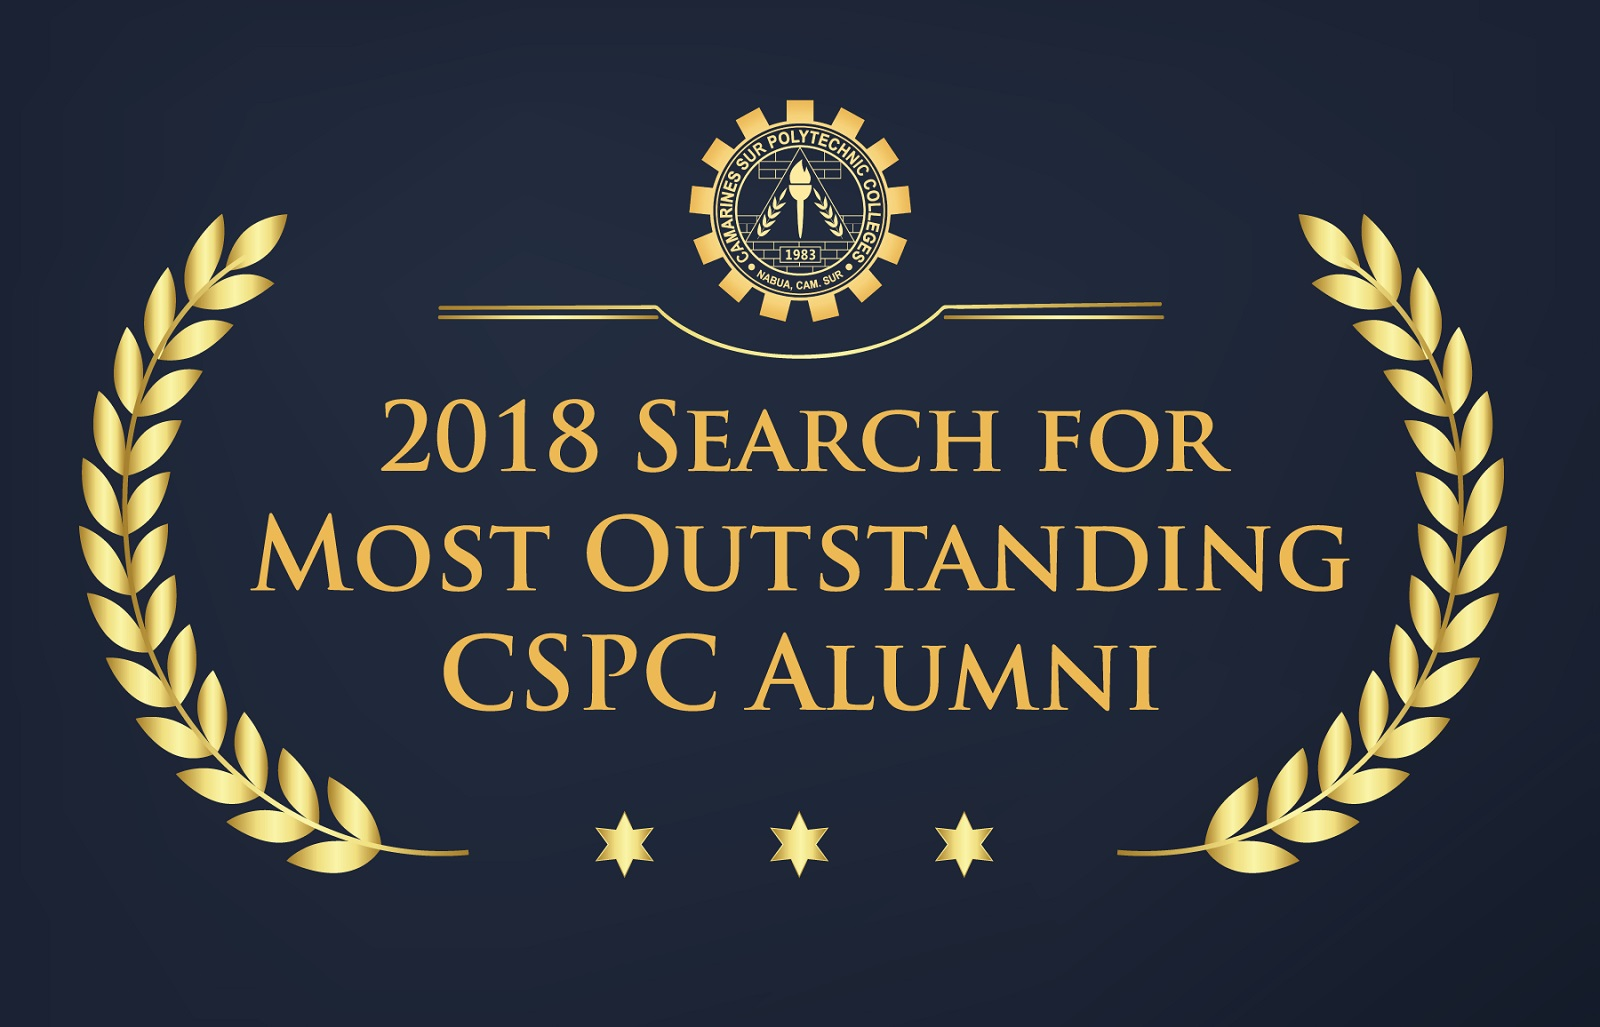 2018 Search for Most Outstanding CSPC Alumni - CSPC